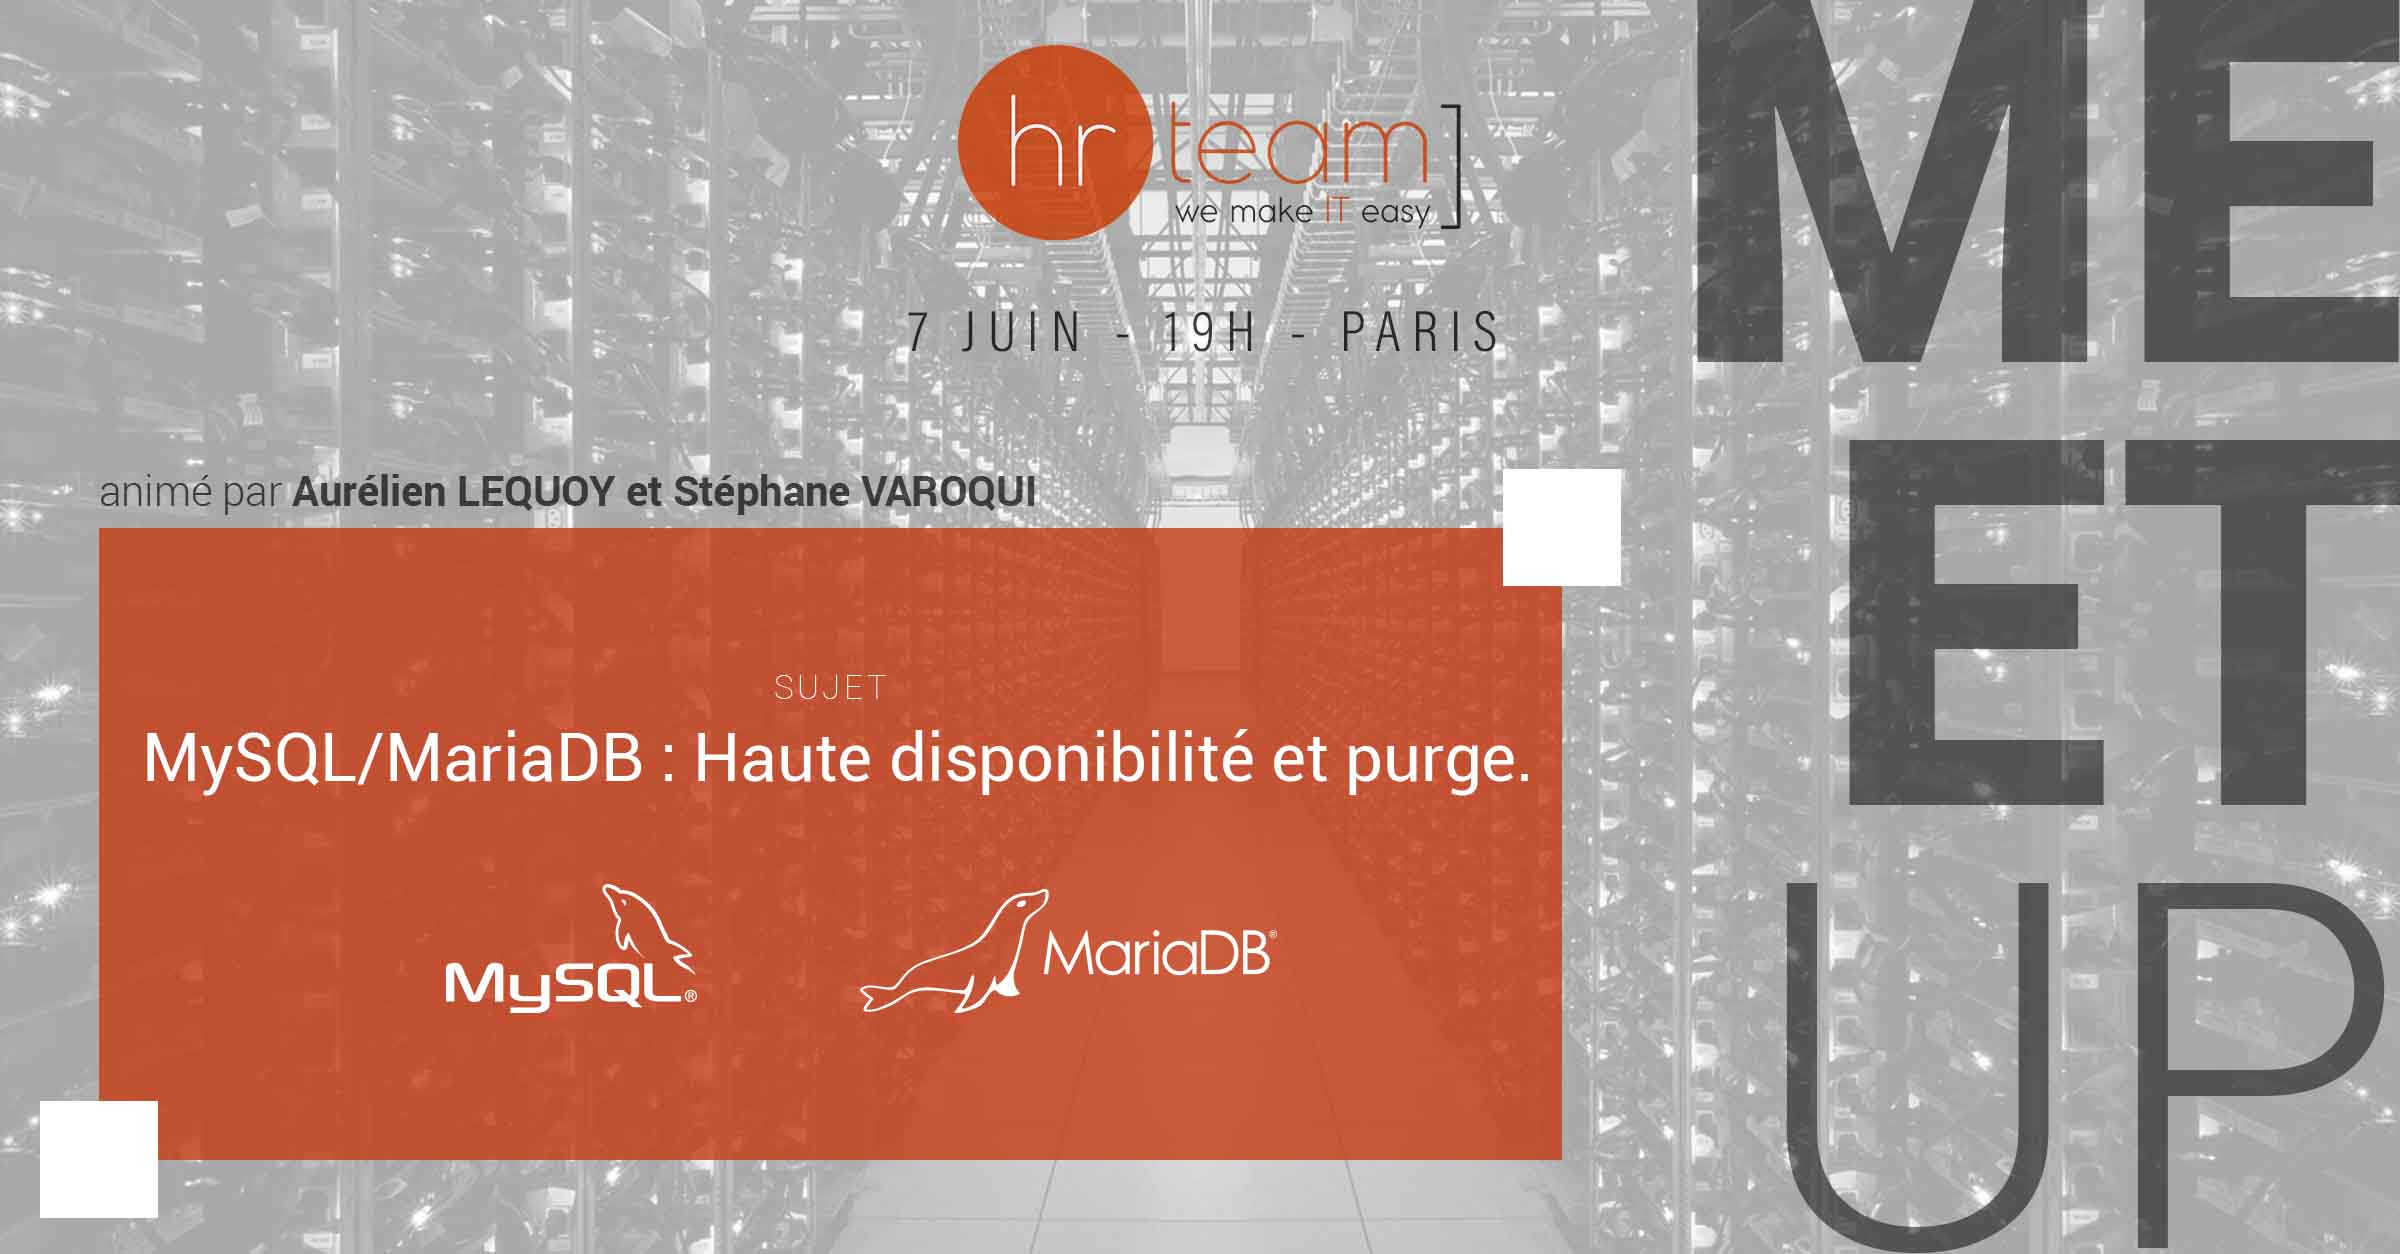 Participez au prochain MeetUp HR Team Paris